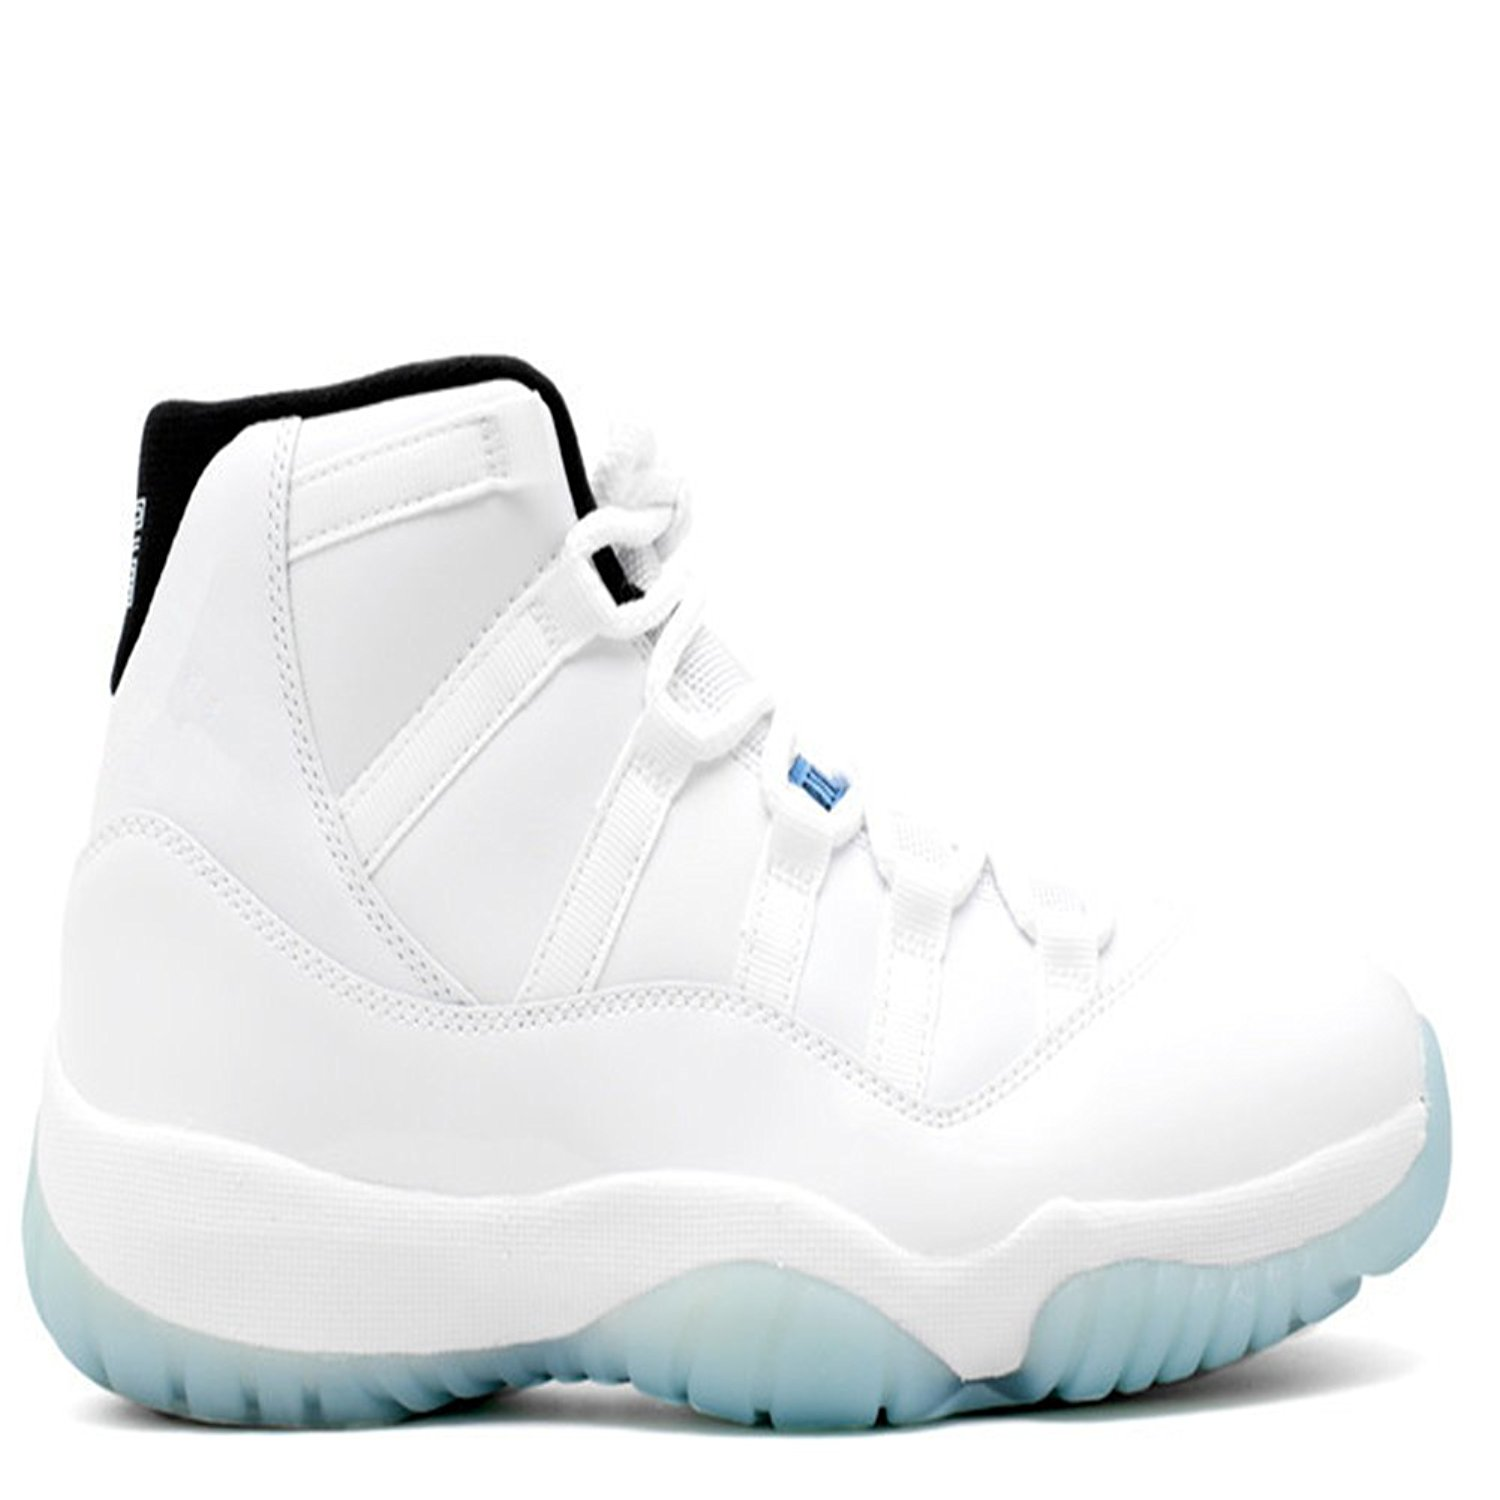 wholesale dealer 8a17e e84df Get Quotations · air jordan 11 retro legend blue white legend blue  basketball shoes